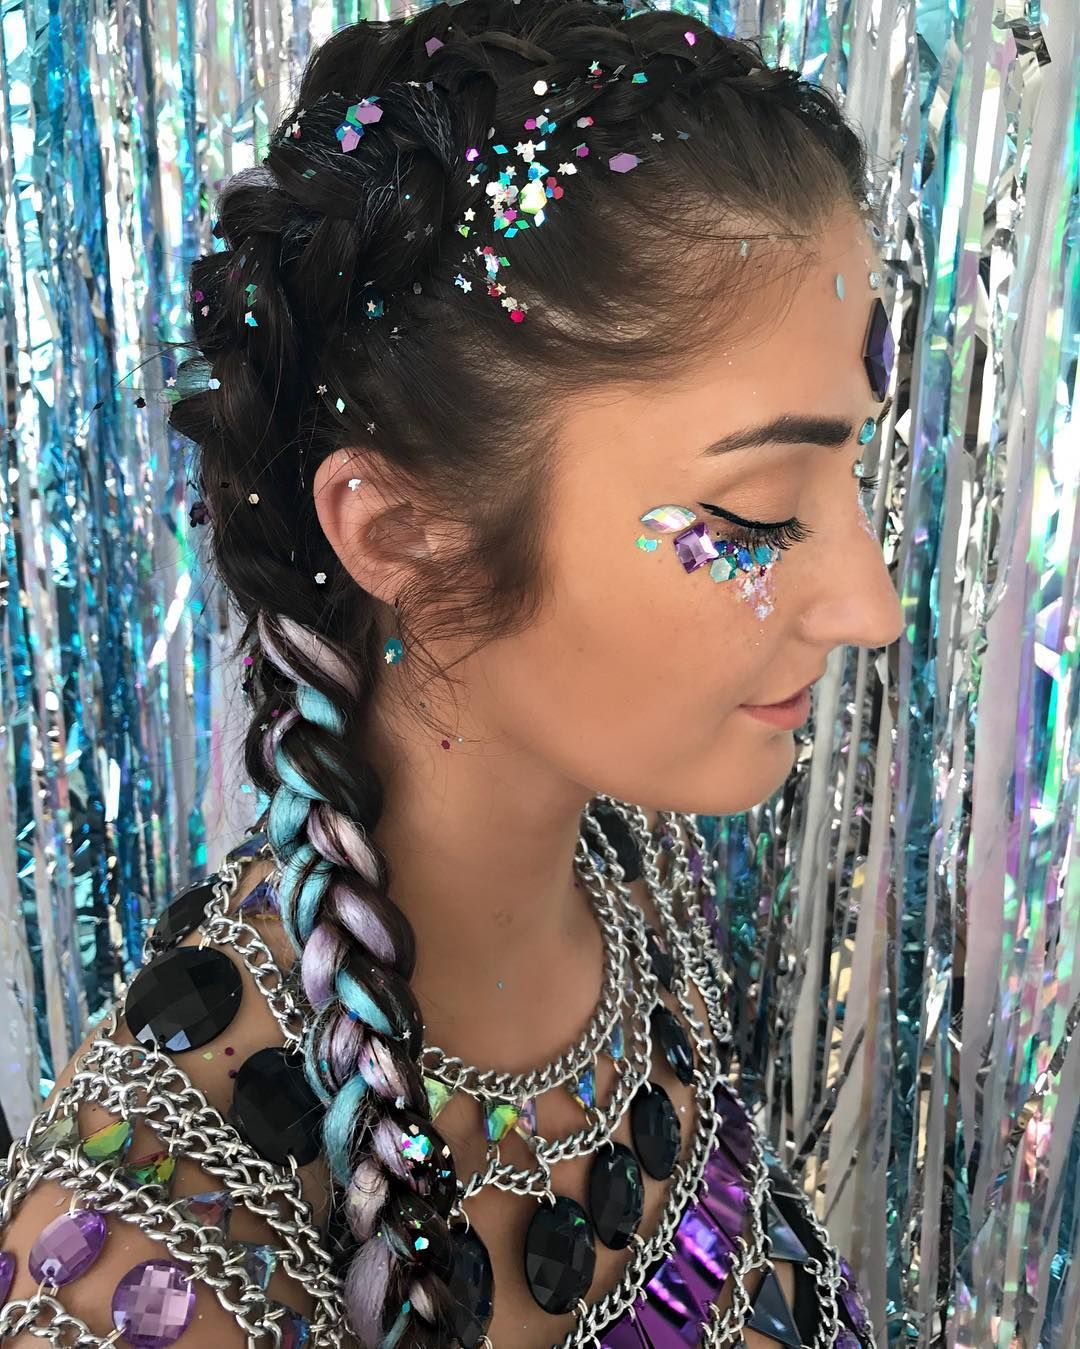 Sparkle shine glitter hair and makeup feathers shimmer - Beautiful Edc Hair Style For Stylish Girl Festival Makeup